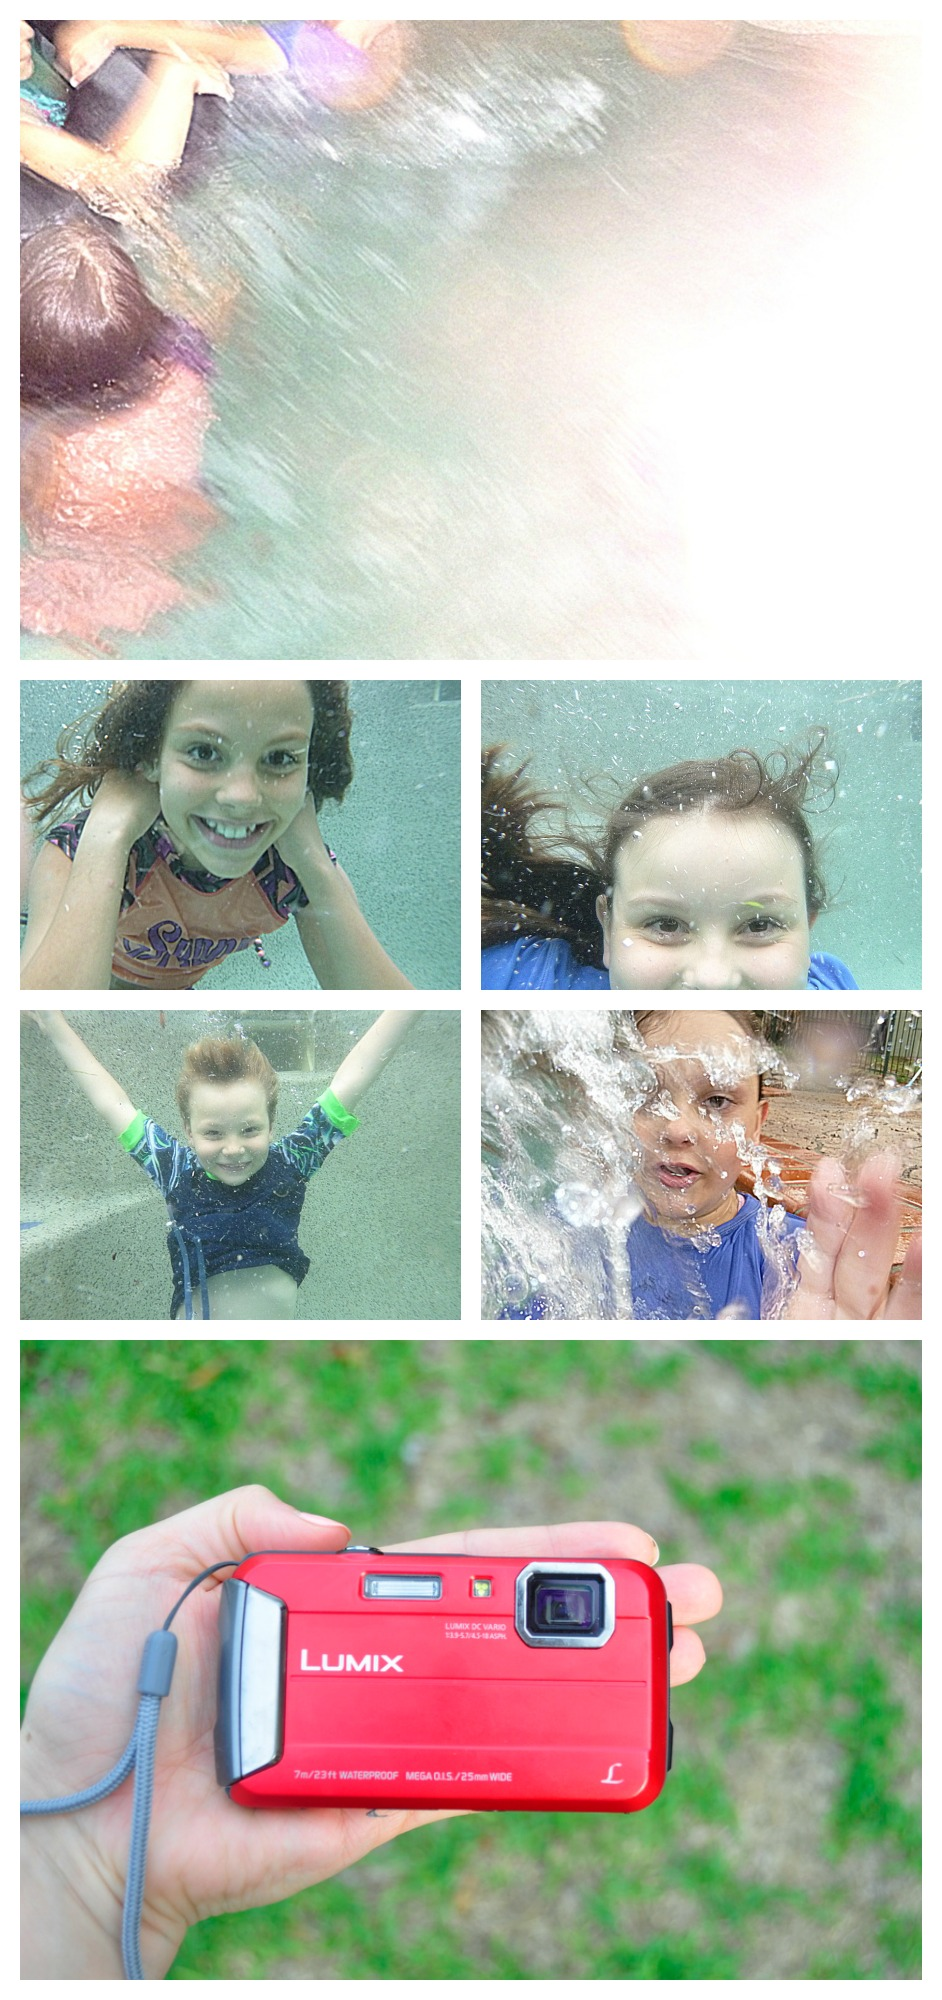 Panasonic Lumix FT25 waterproof camera  - Underwater photos